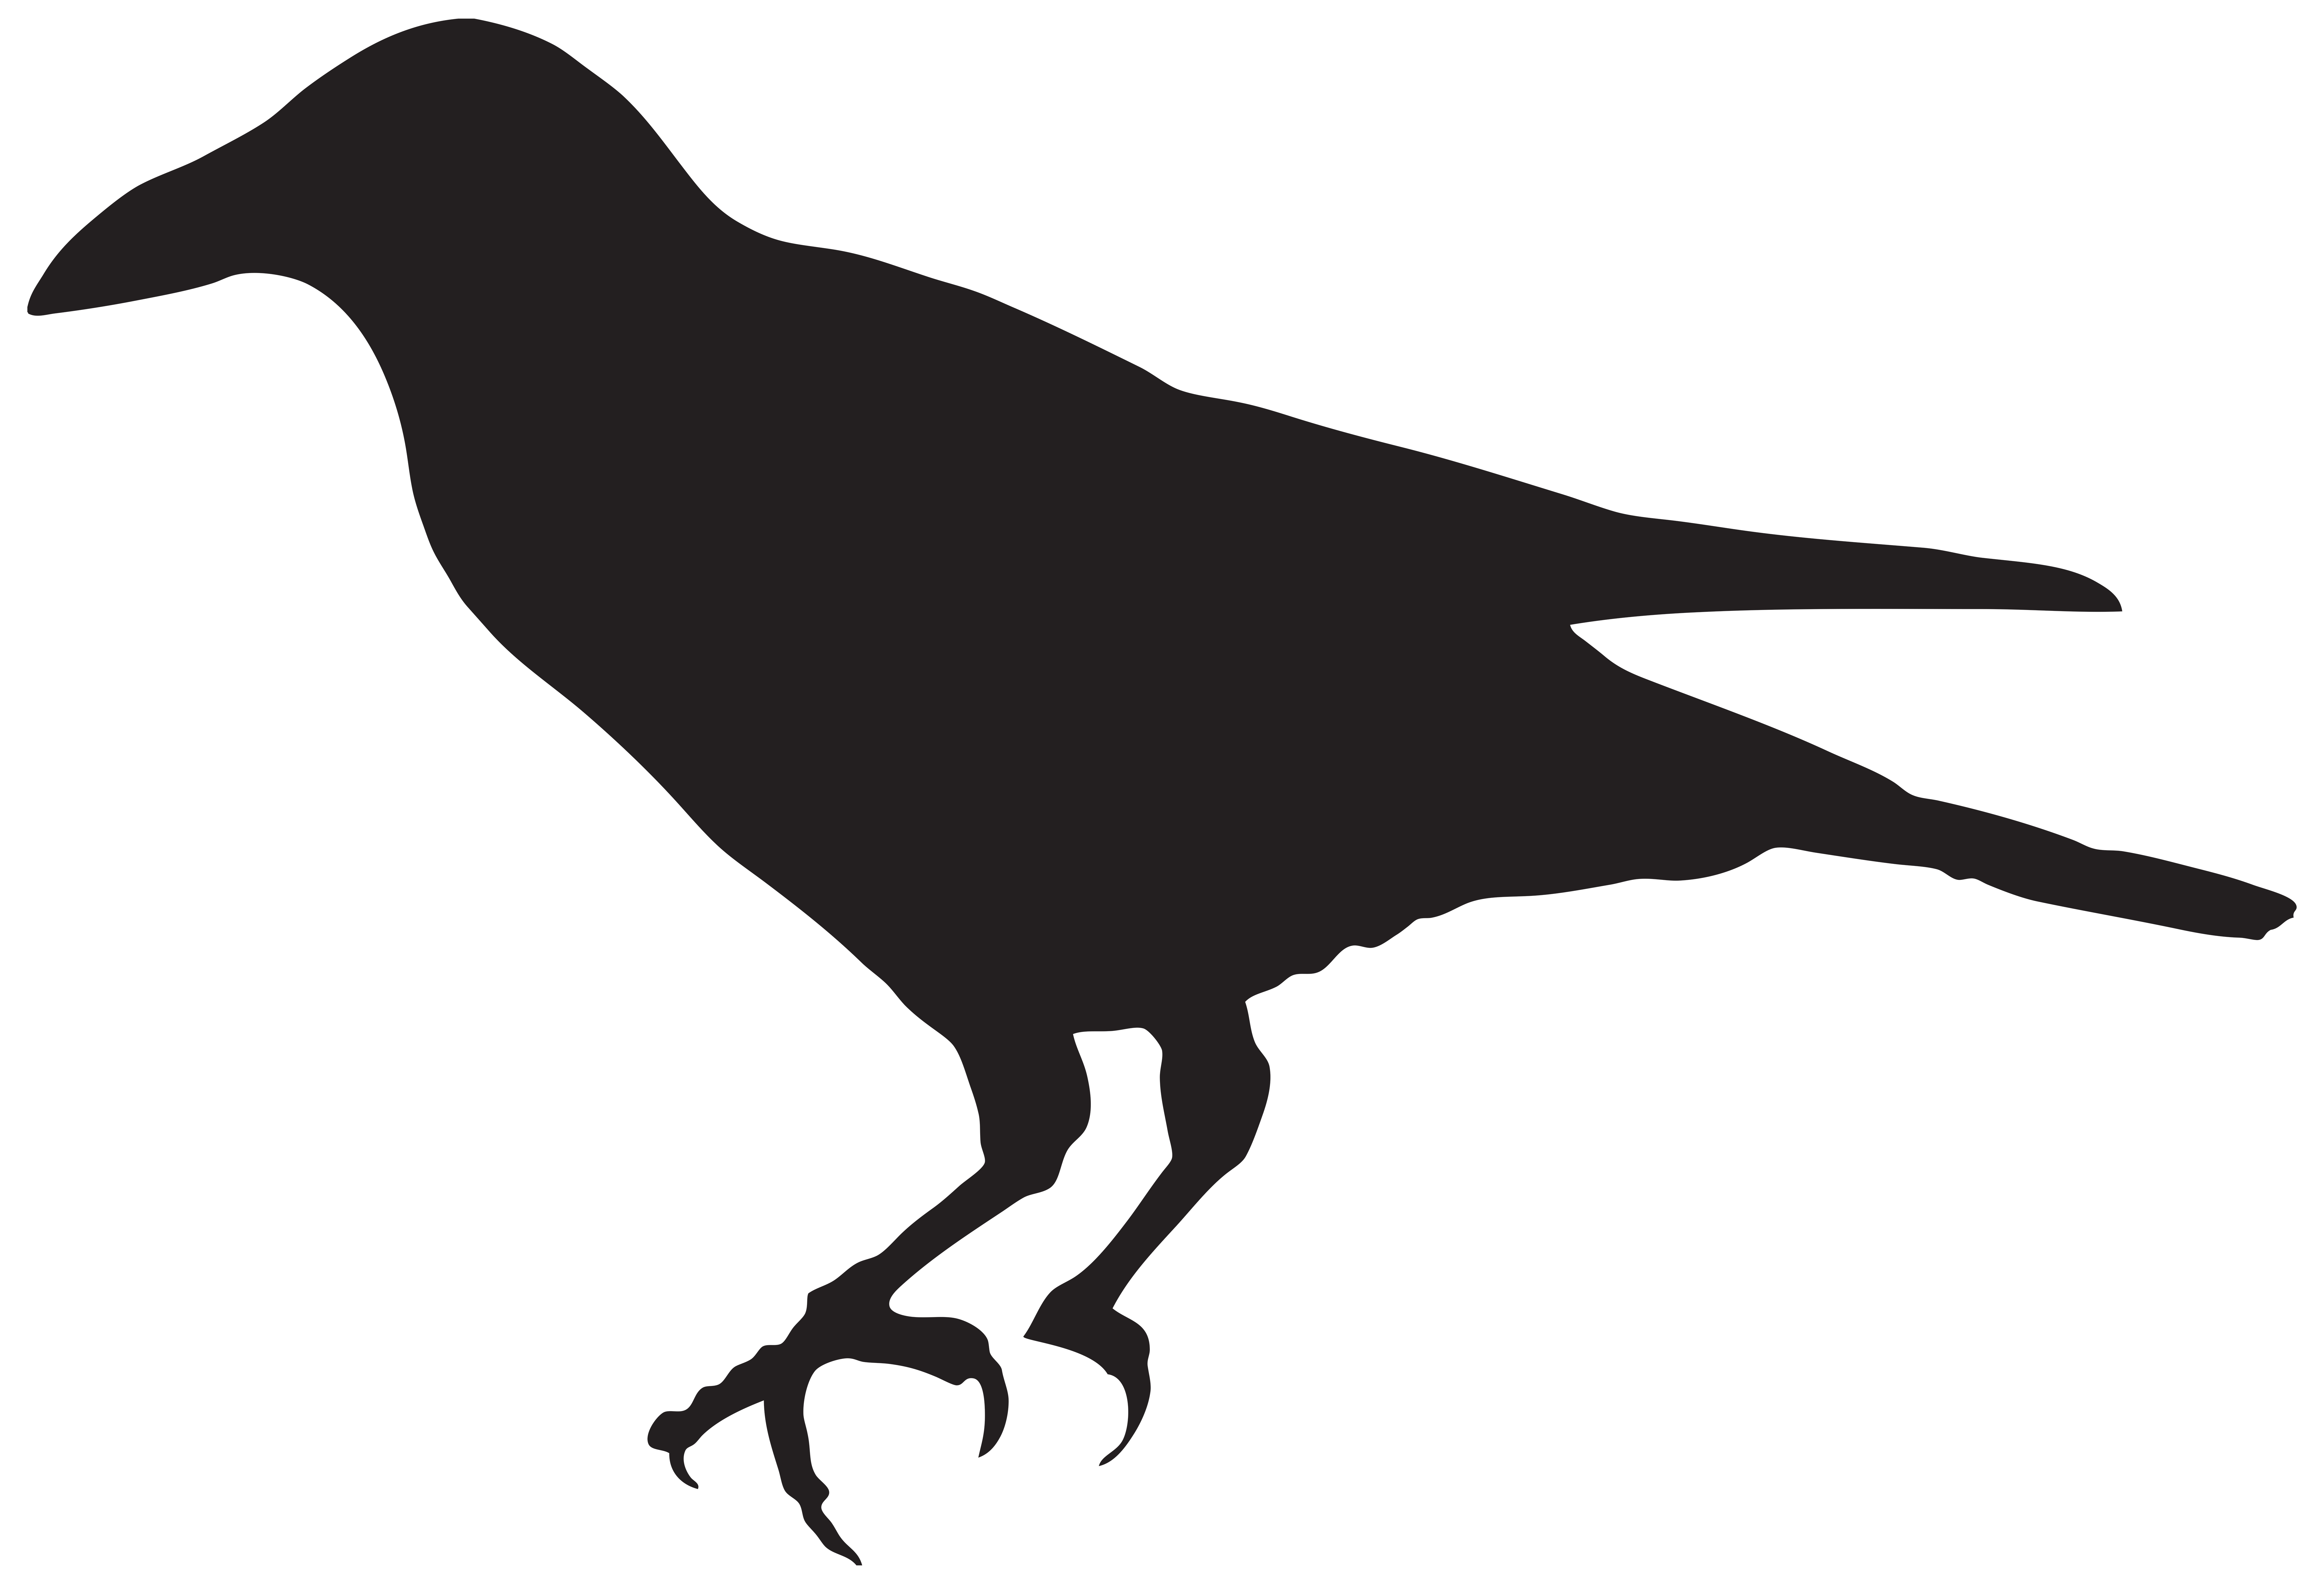 Raven in tree clipart graphic freeuse download Crow Silhouette PNG Clip Art Image | Sewing | Pinterest | Crow ... graphic freeuse download